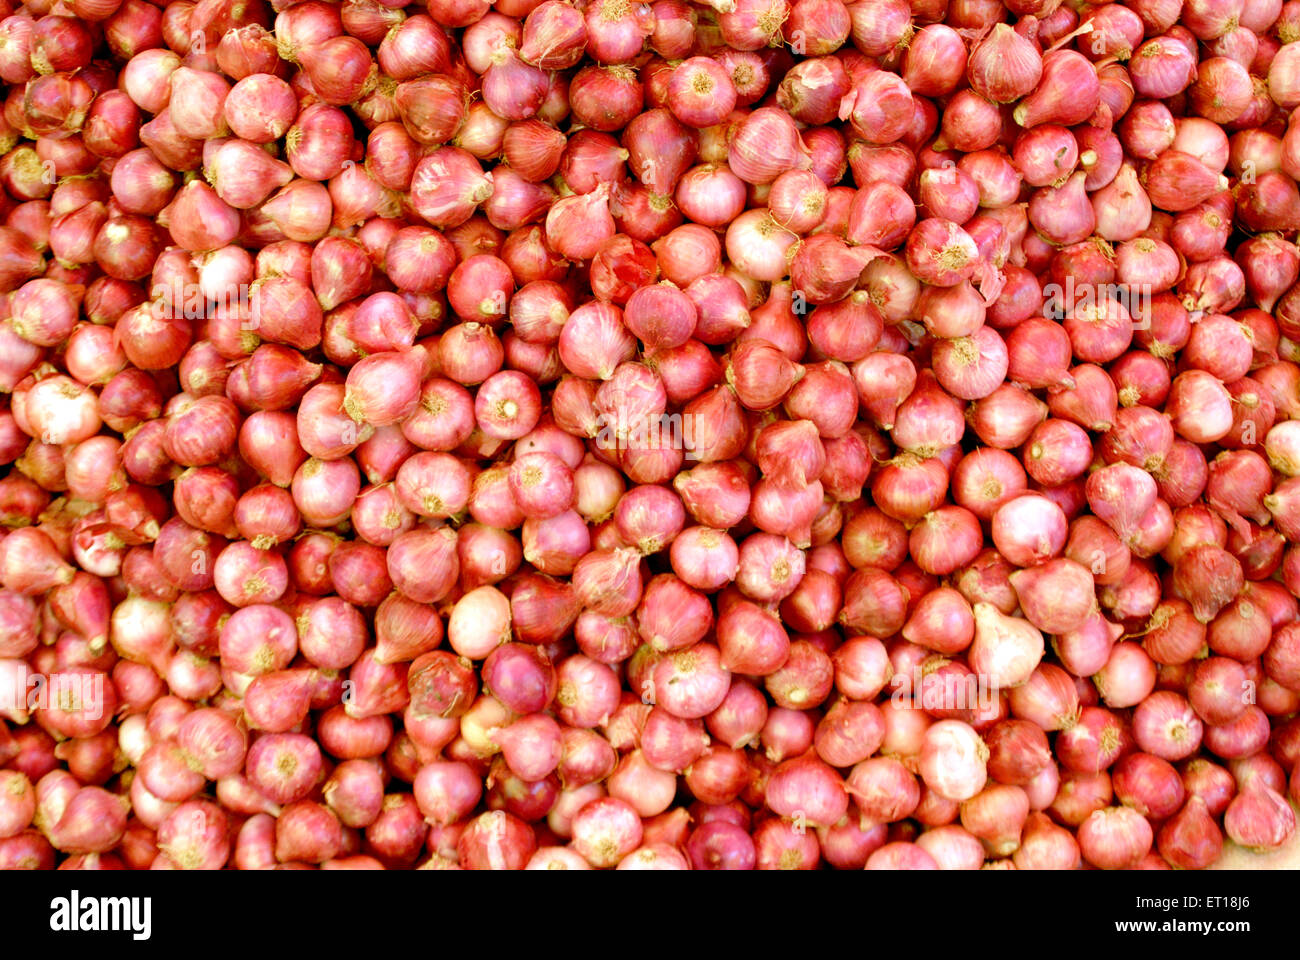 Spices ; onions November 2008 - Stock Image